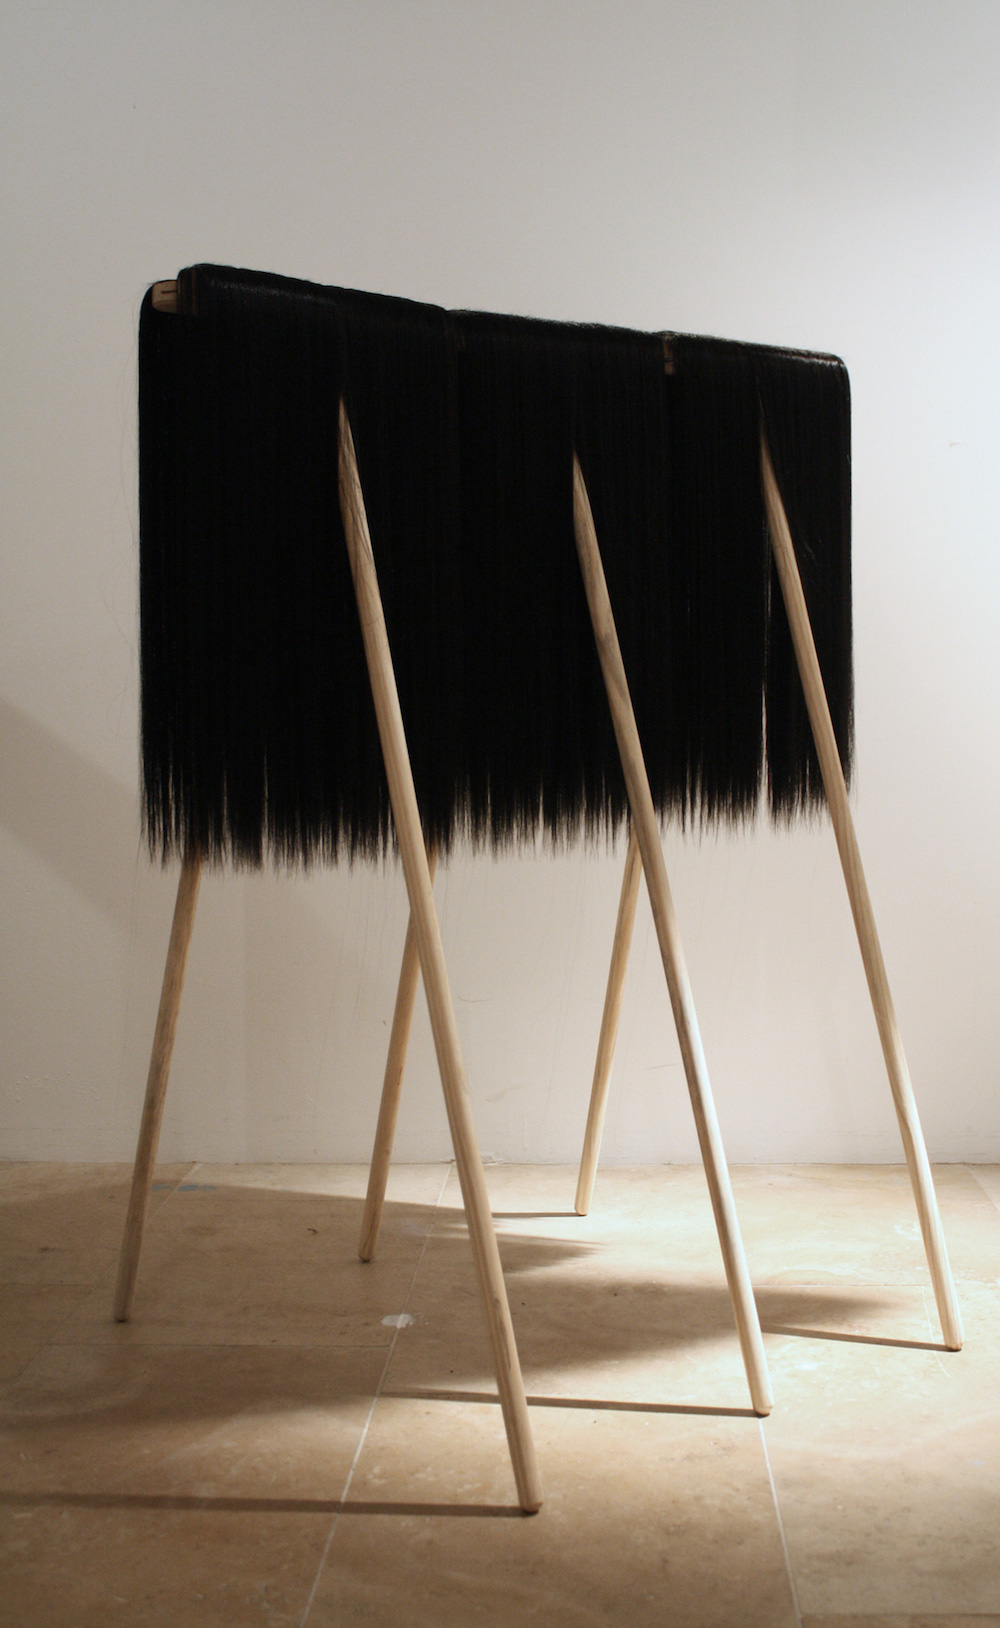 Long-bodied Cellar Brooms 90 x 115 x 72 cm Synthetic hair and wooden brooms 2015